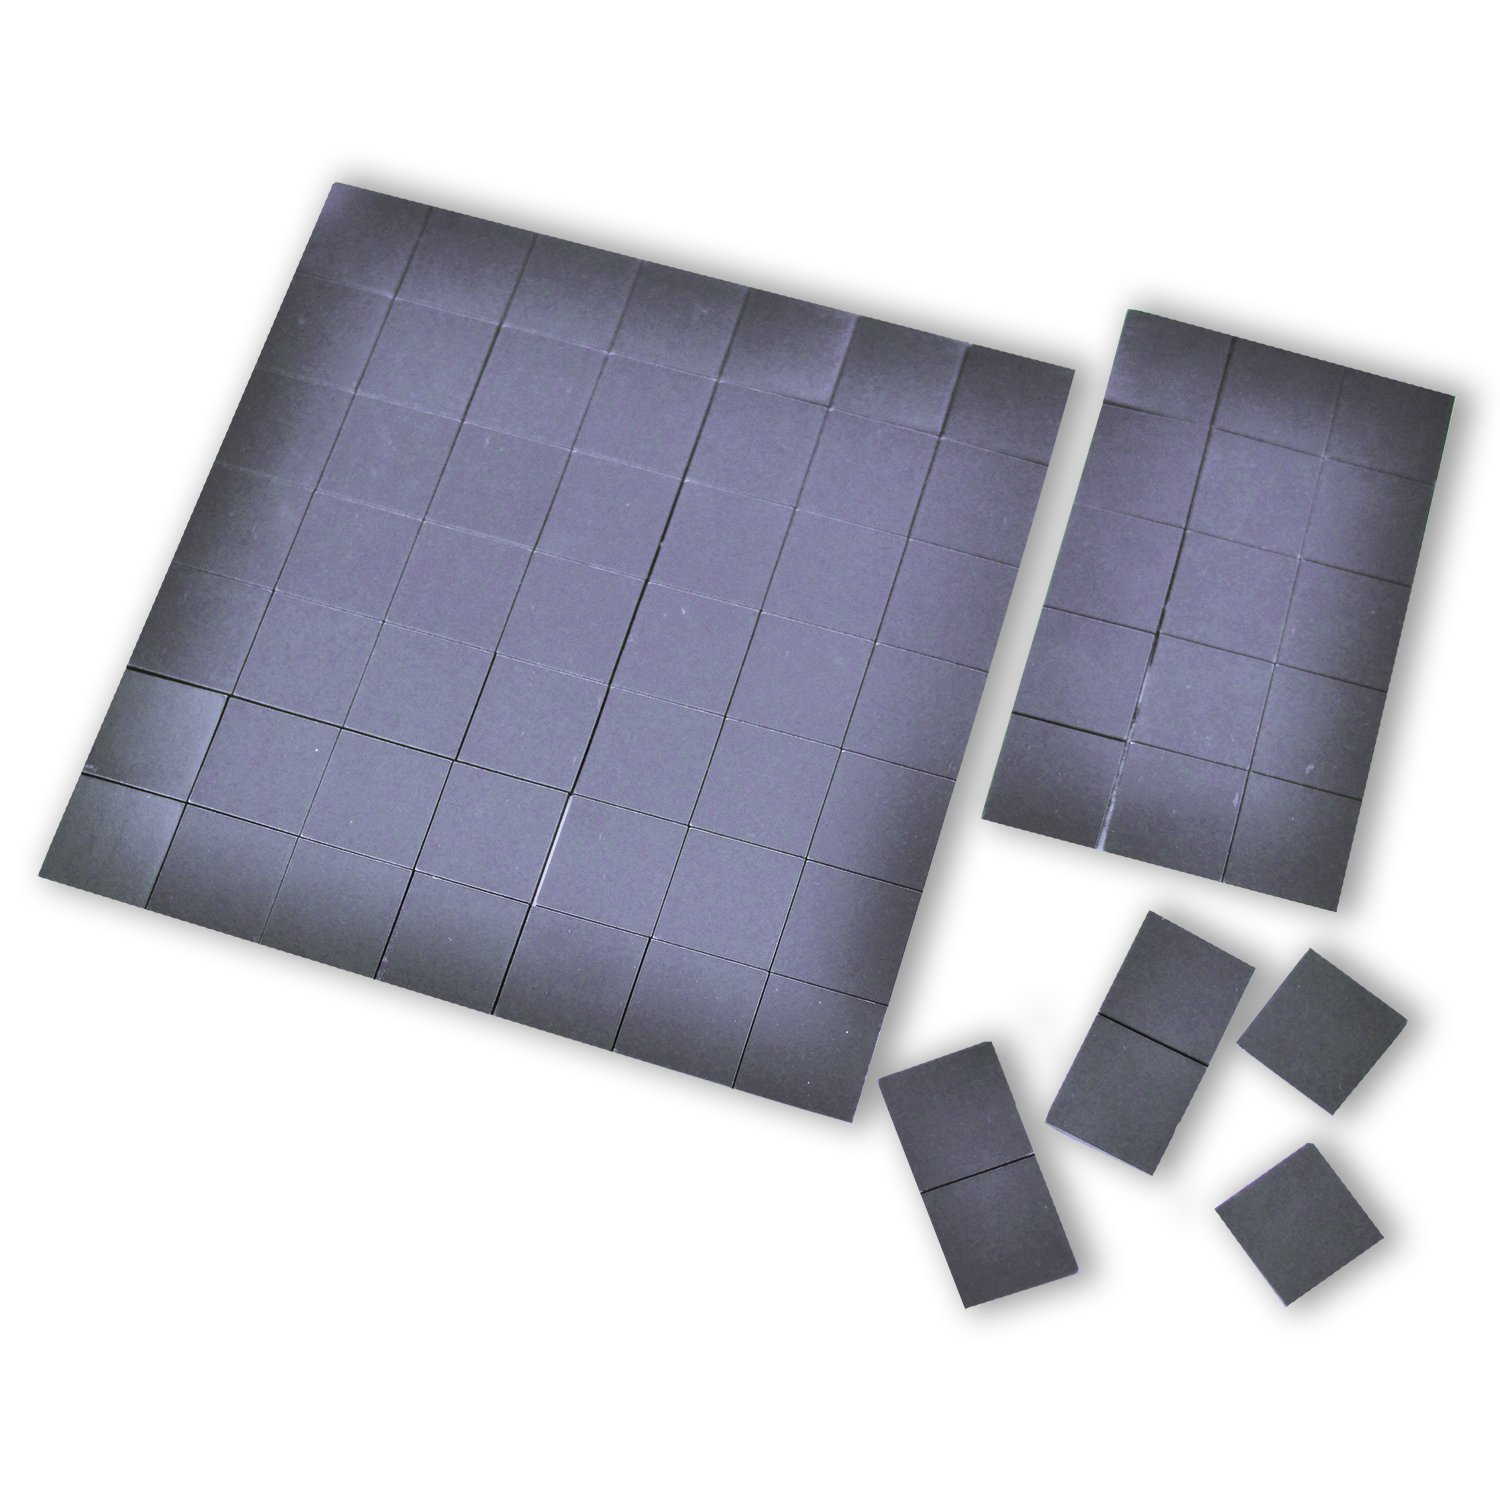 Magnefic! Magnetic Squares, 1 tape sheet of 70 magnetic squares (each 20x20x2mm), magnet